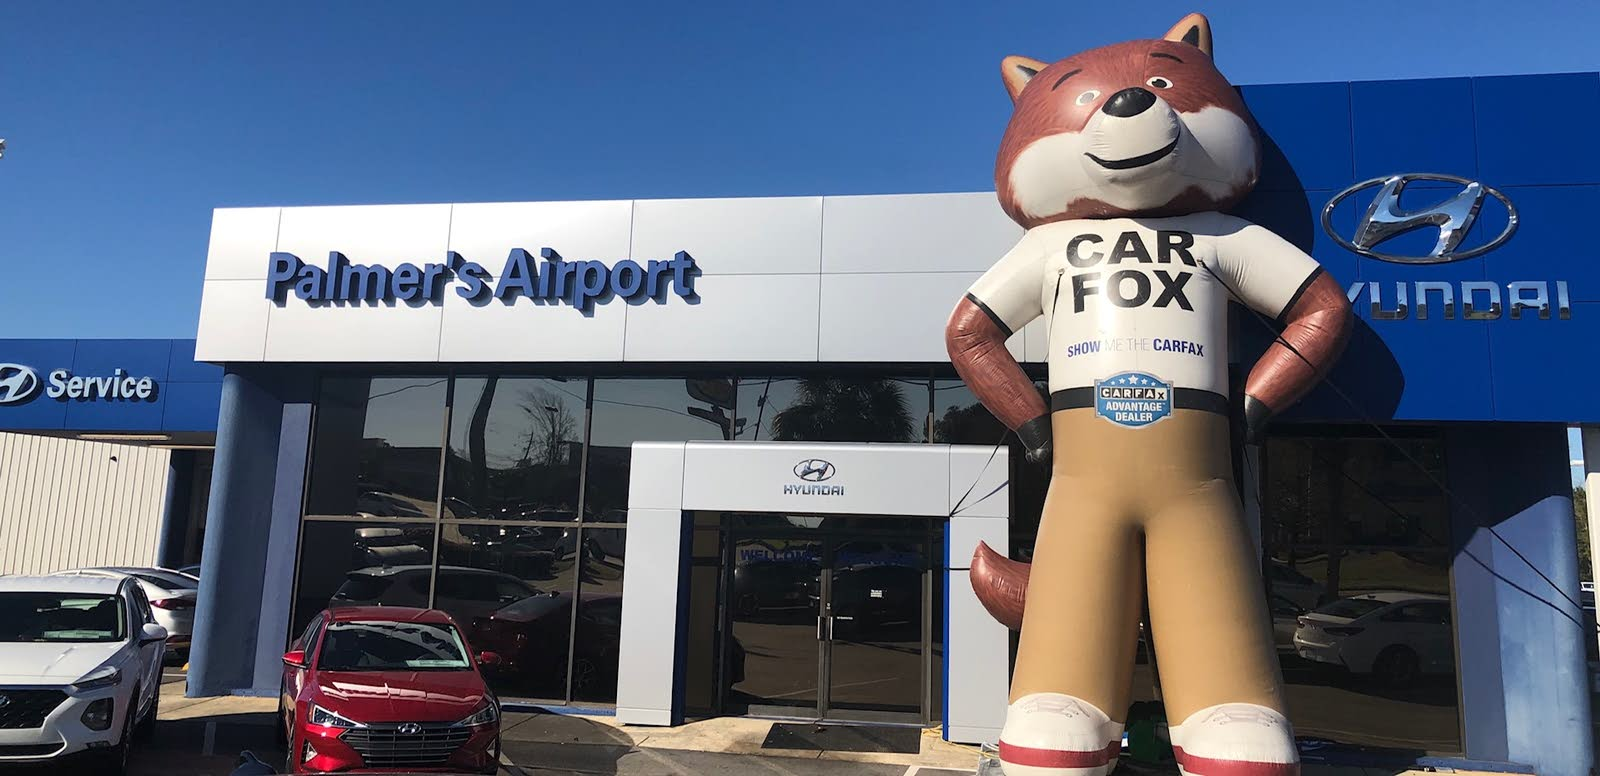 Honda Dealership Mobile Al >> Palmer's Airport Hyundai - Mobile, AL: Read Consumer reviews, Browse Used and New Cars for Sale